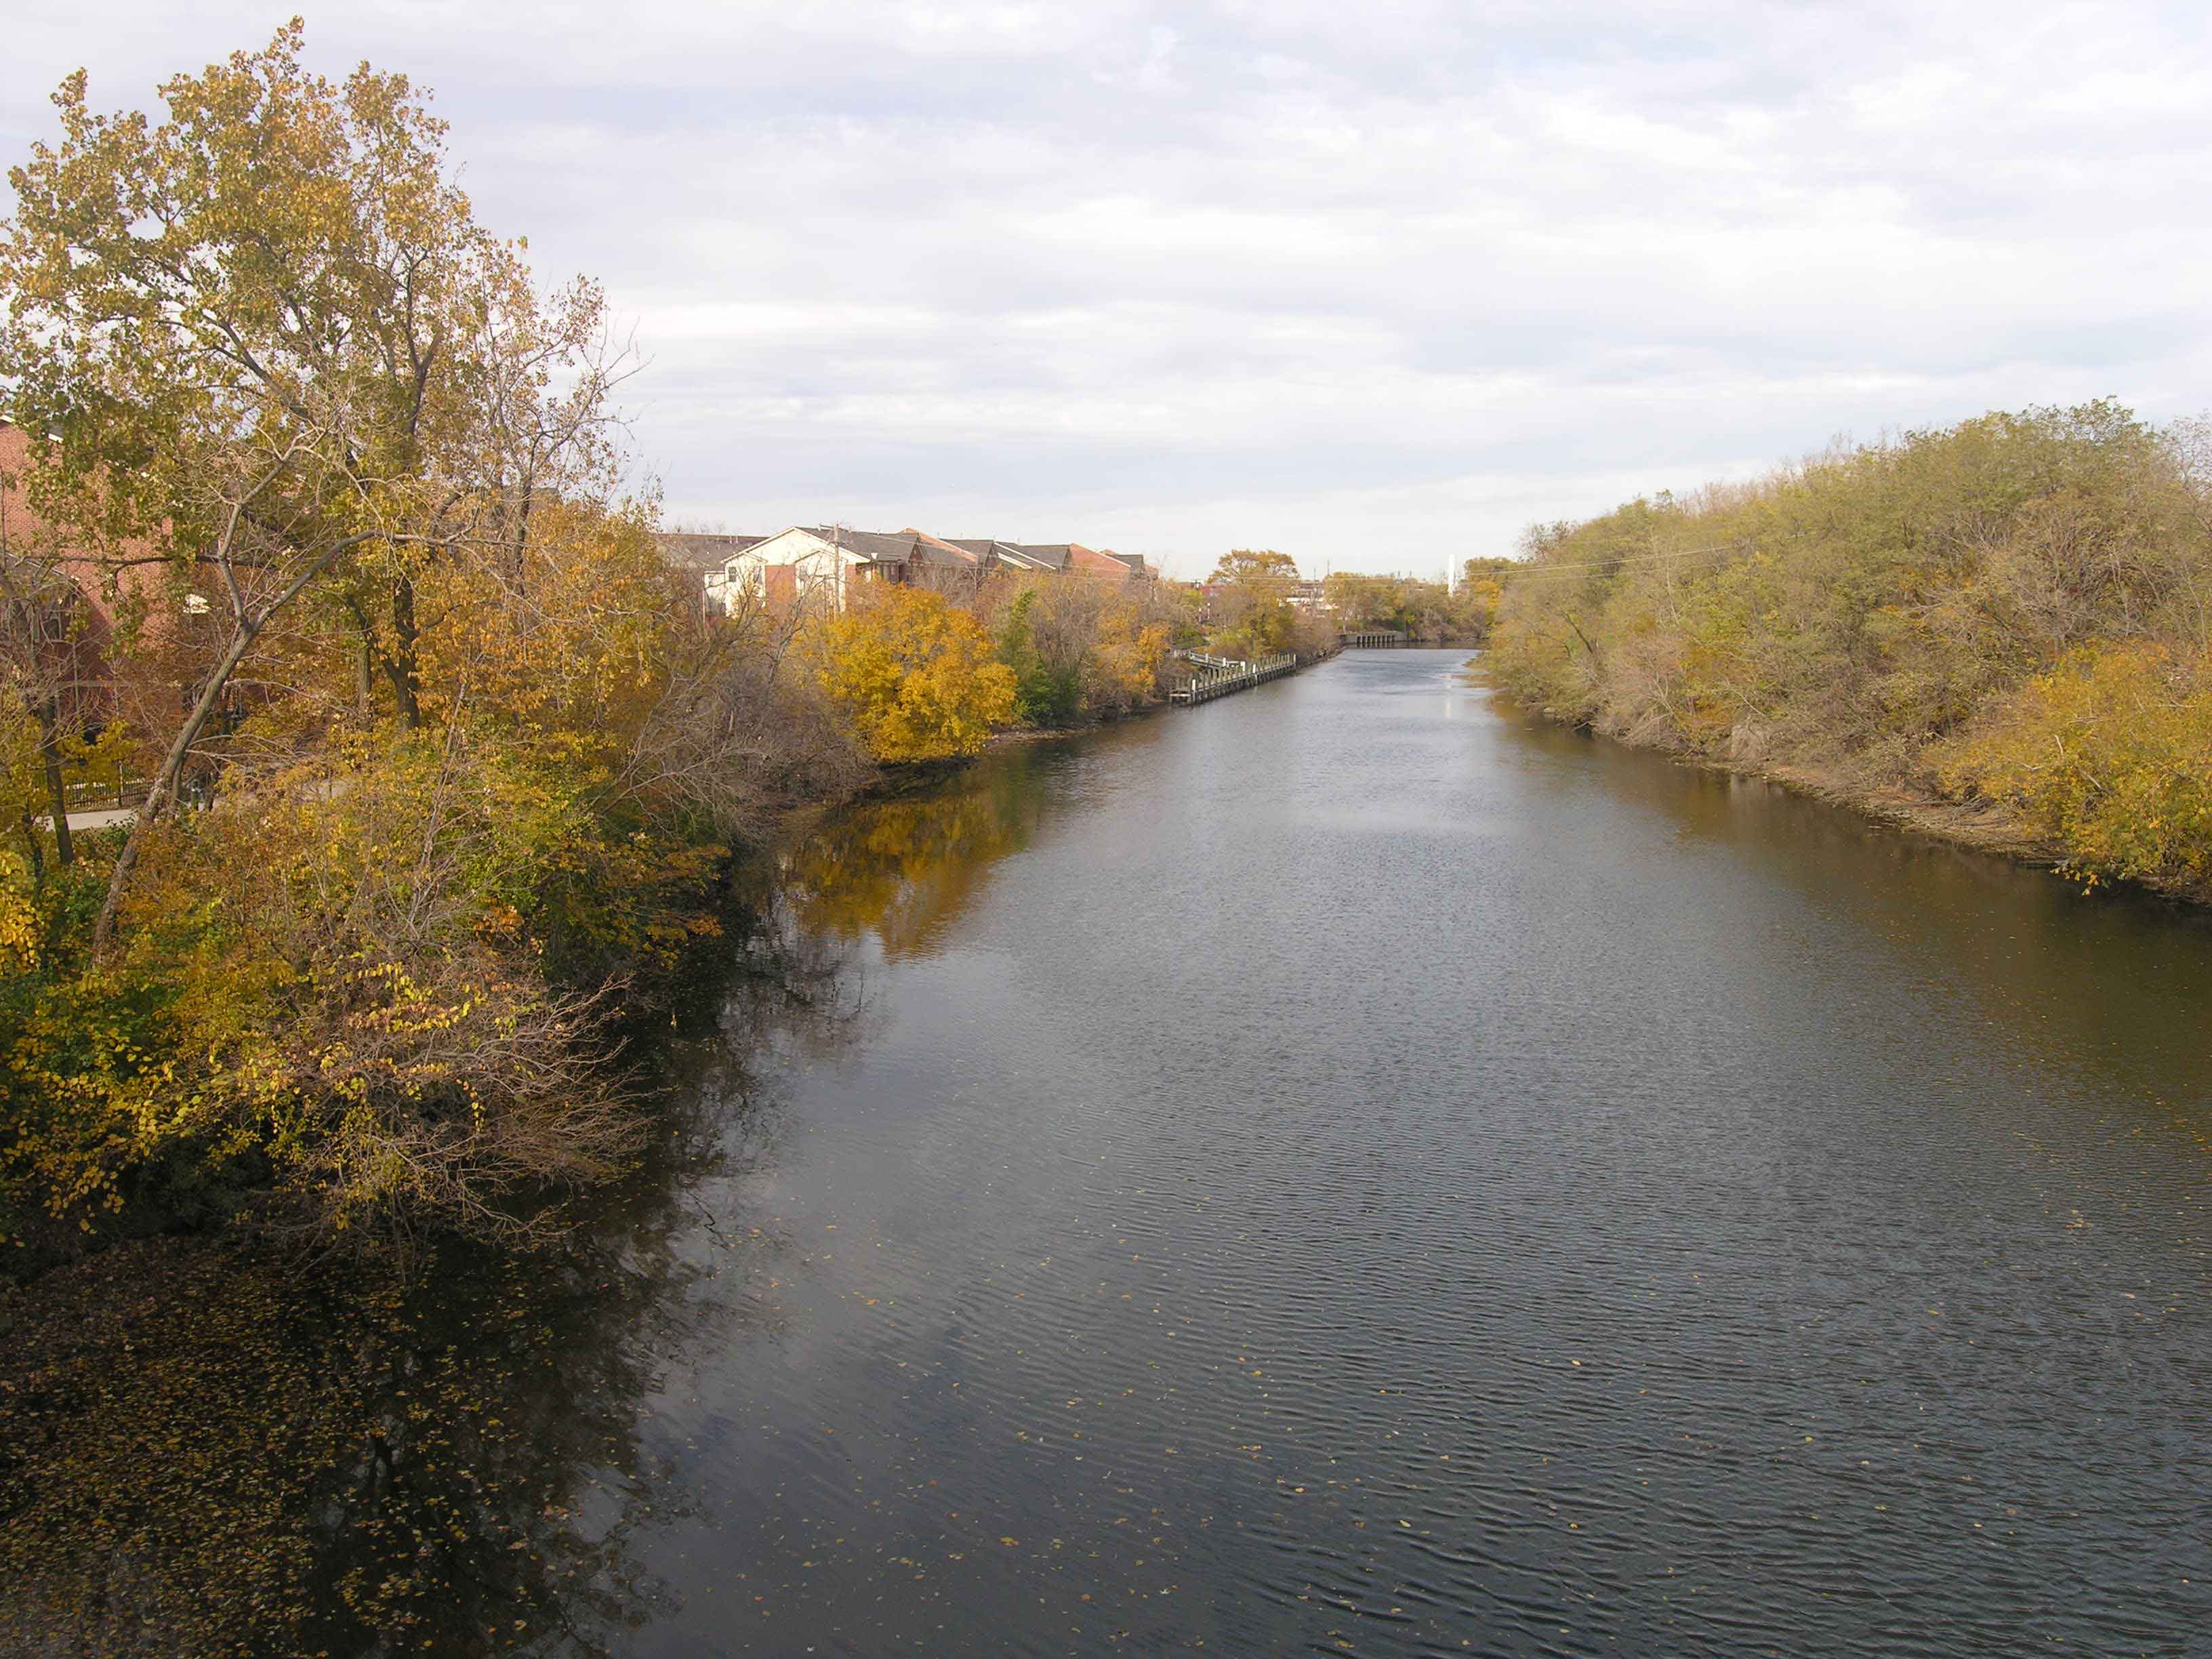 View of the river from Belmont bridge